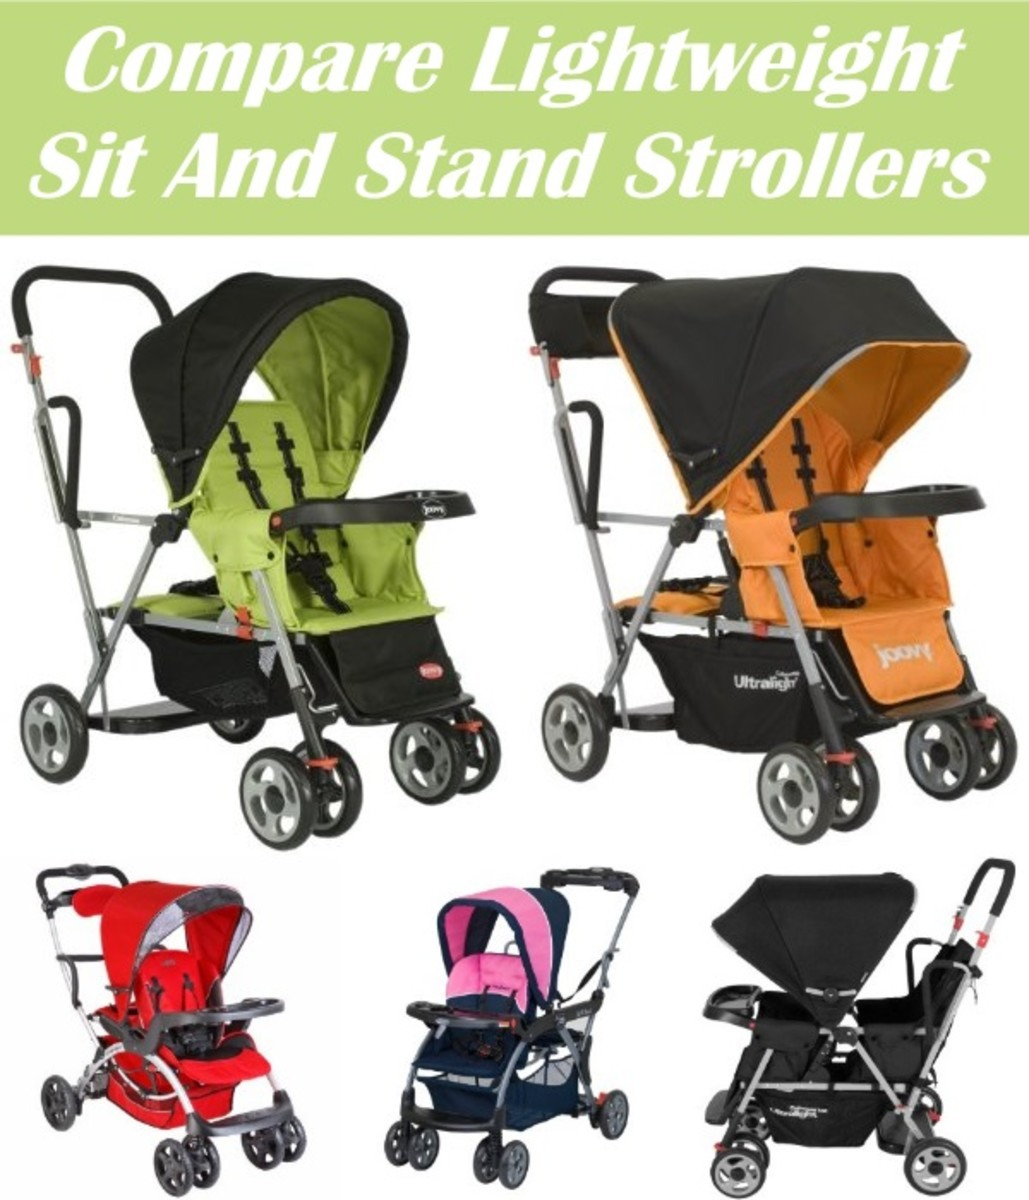 Best Tandem Lightweight Stroller The Best Sit And Stand Strollers Hubpages